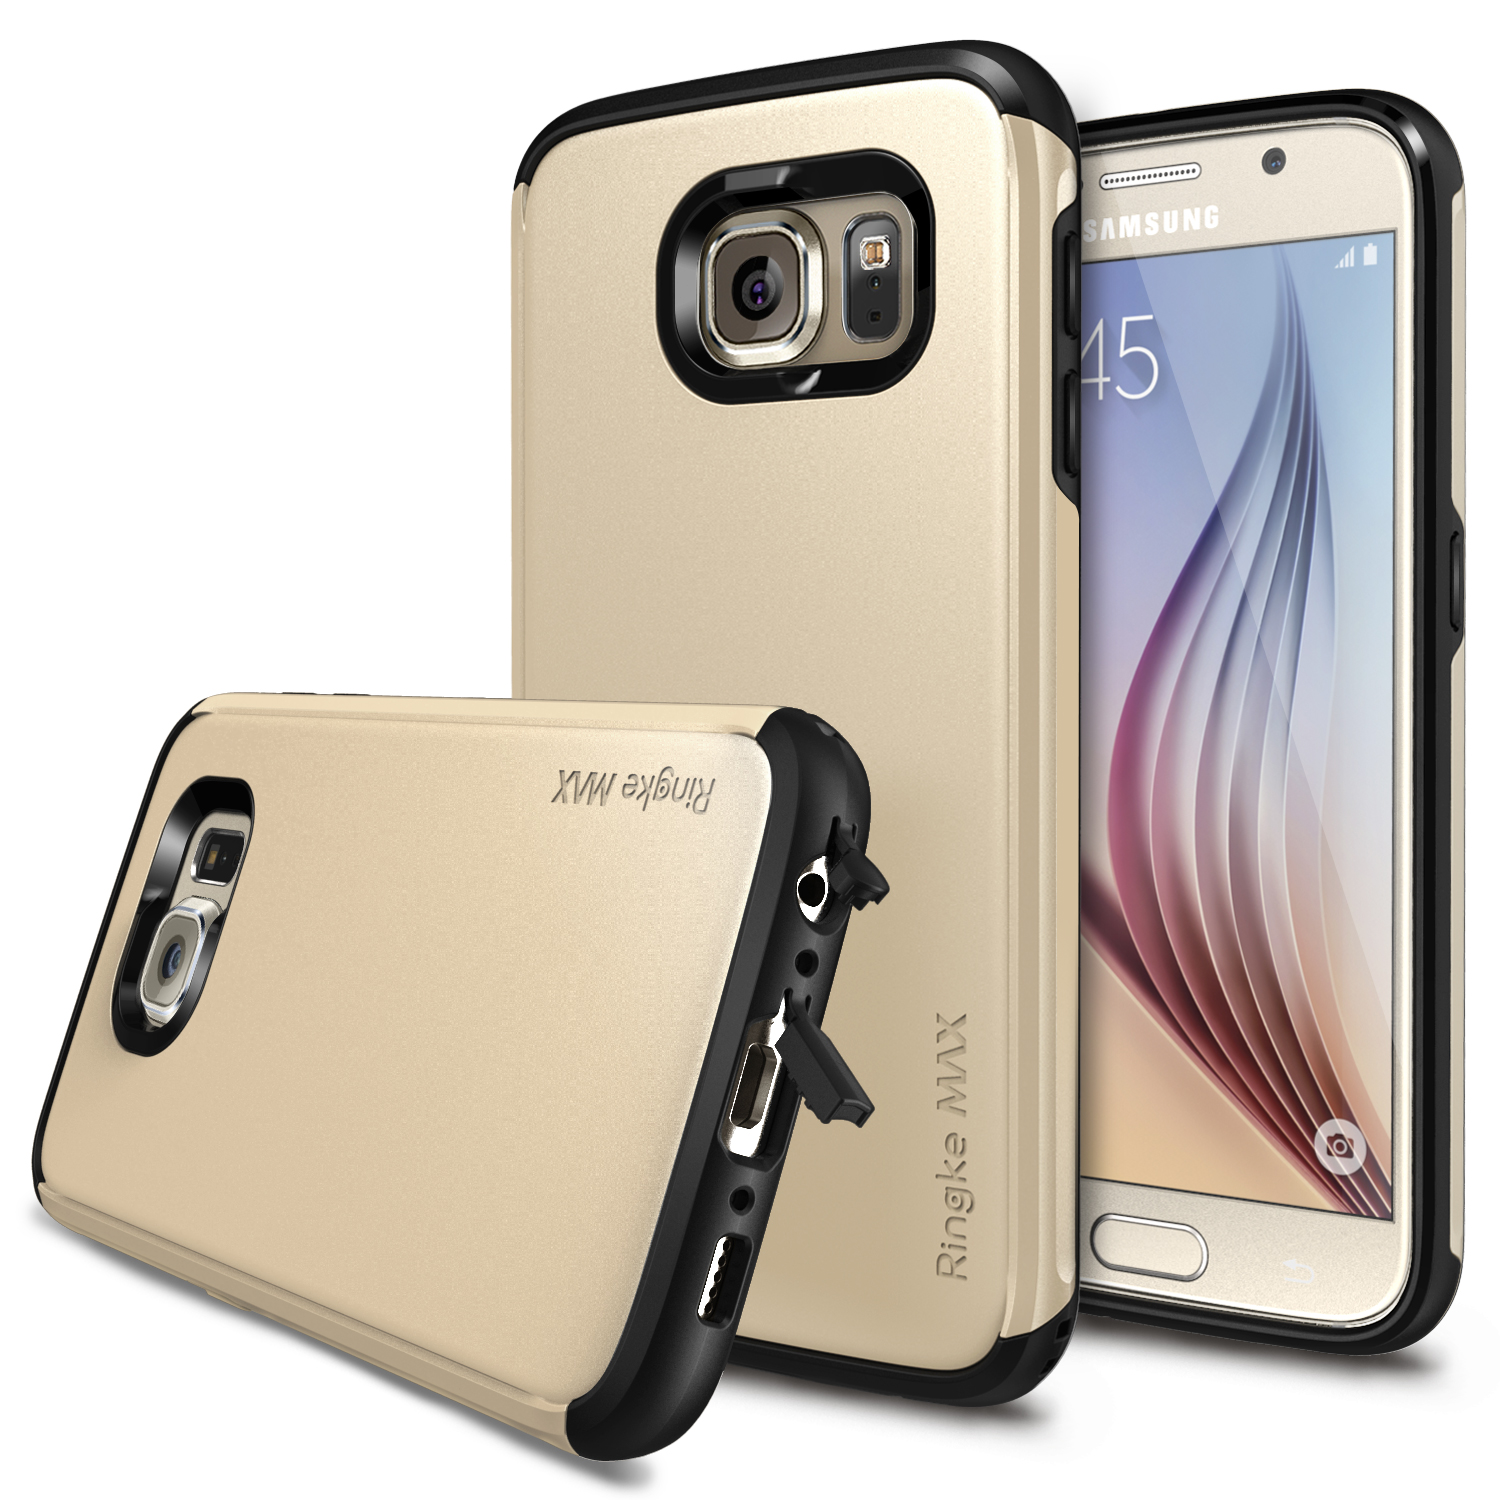 Samsung Galaxy S6 Case, Ringke [Royal Gold] MAXX Series Premium Dual Layer Protective Armor Case w/ Free Screen Protector